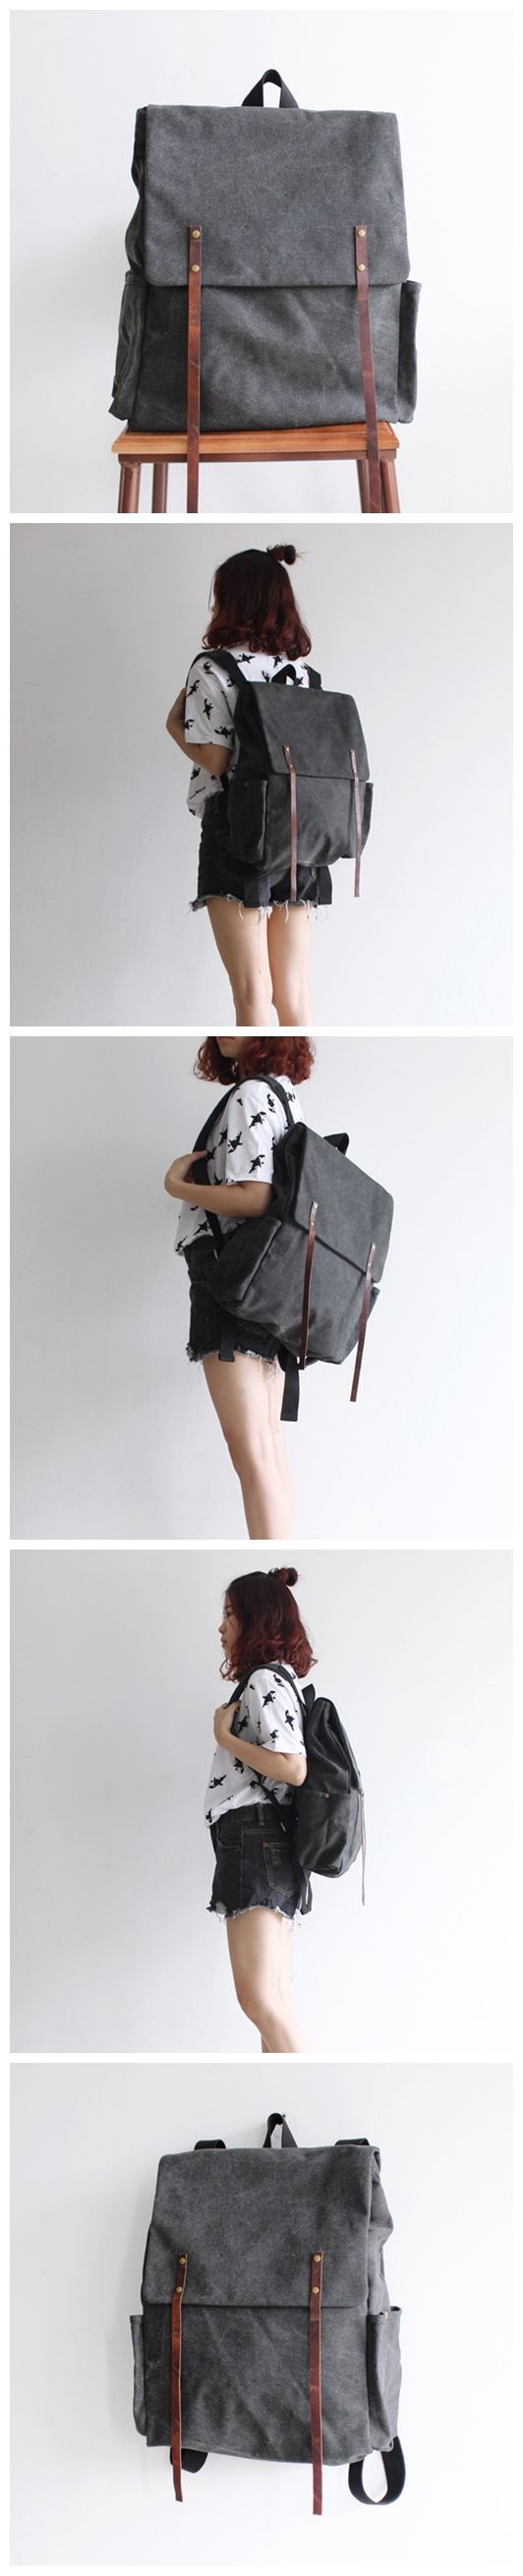 Original Handcrafted Waterproof Waxed Canvas Backpack School Bag Canvas Rucksack Travel Backpack Laptop Backpack Casual Daypacks 14049 -------------------------------- - 16oz waxed canvas - Cotton lin